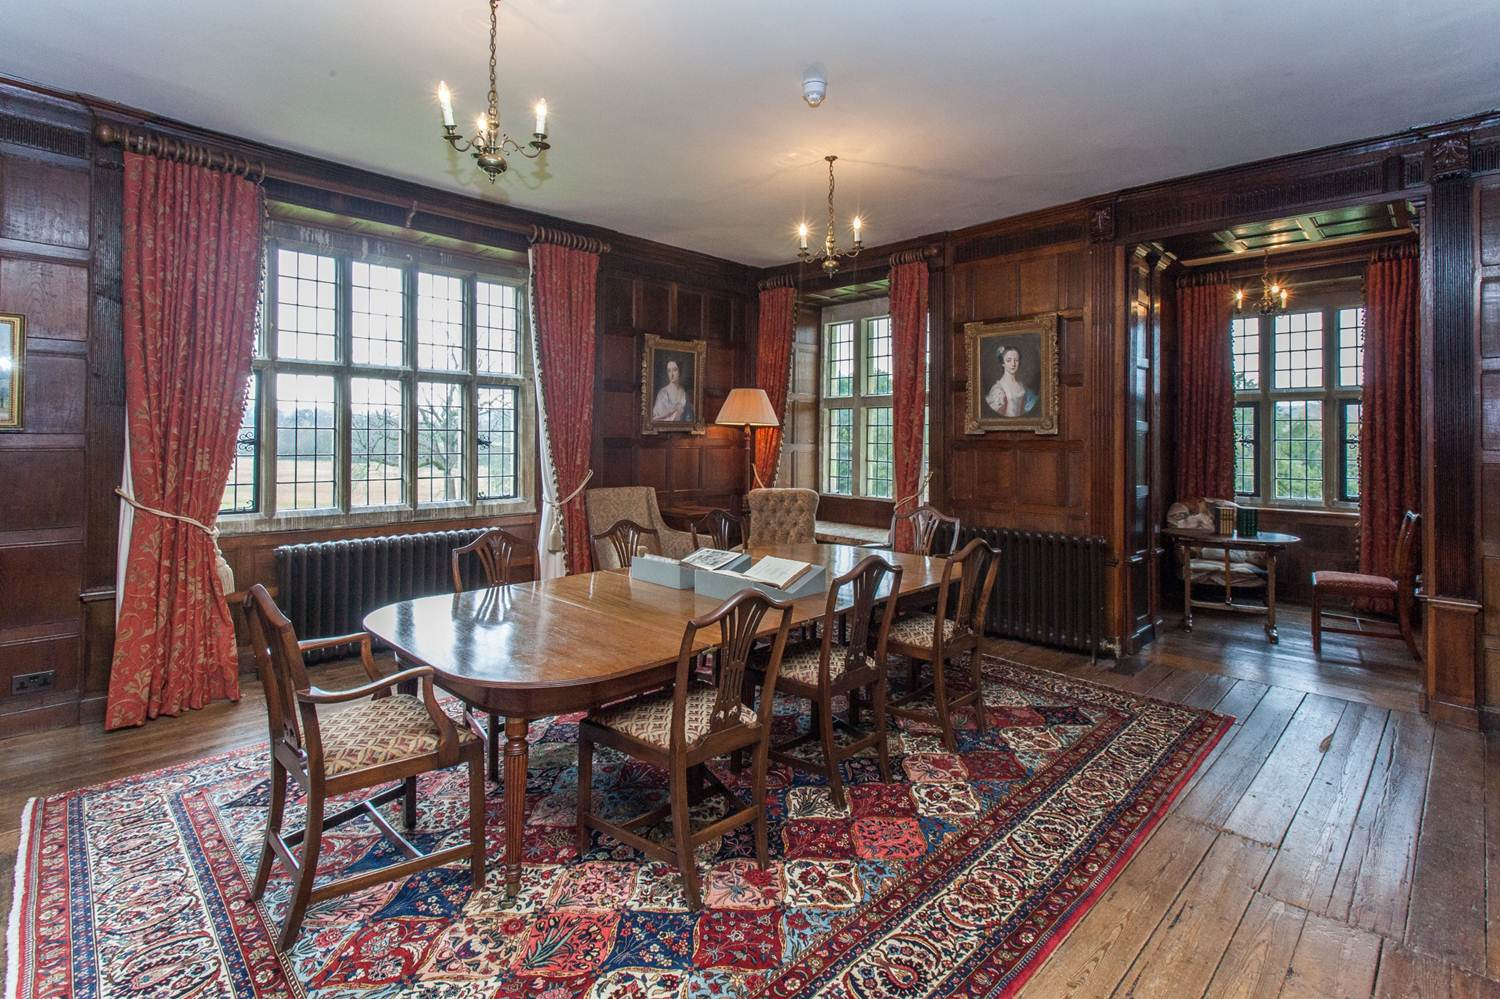 The Oak Room - where Jane Austen liked to sit